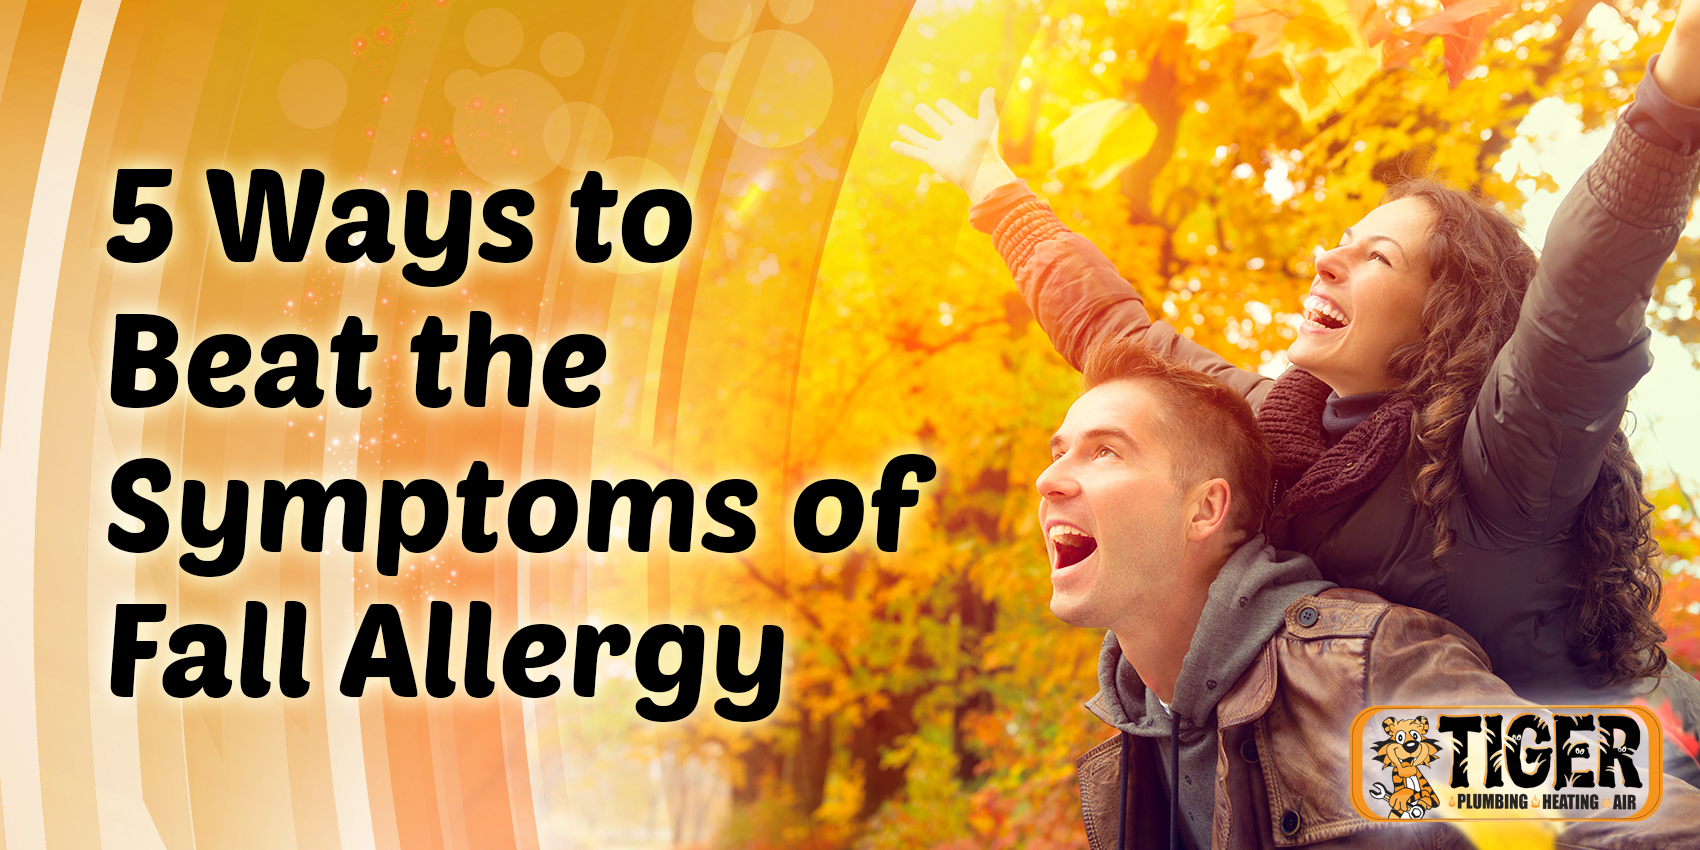 5 Ways to Beat the Symptoms of Fall Allergy